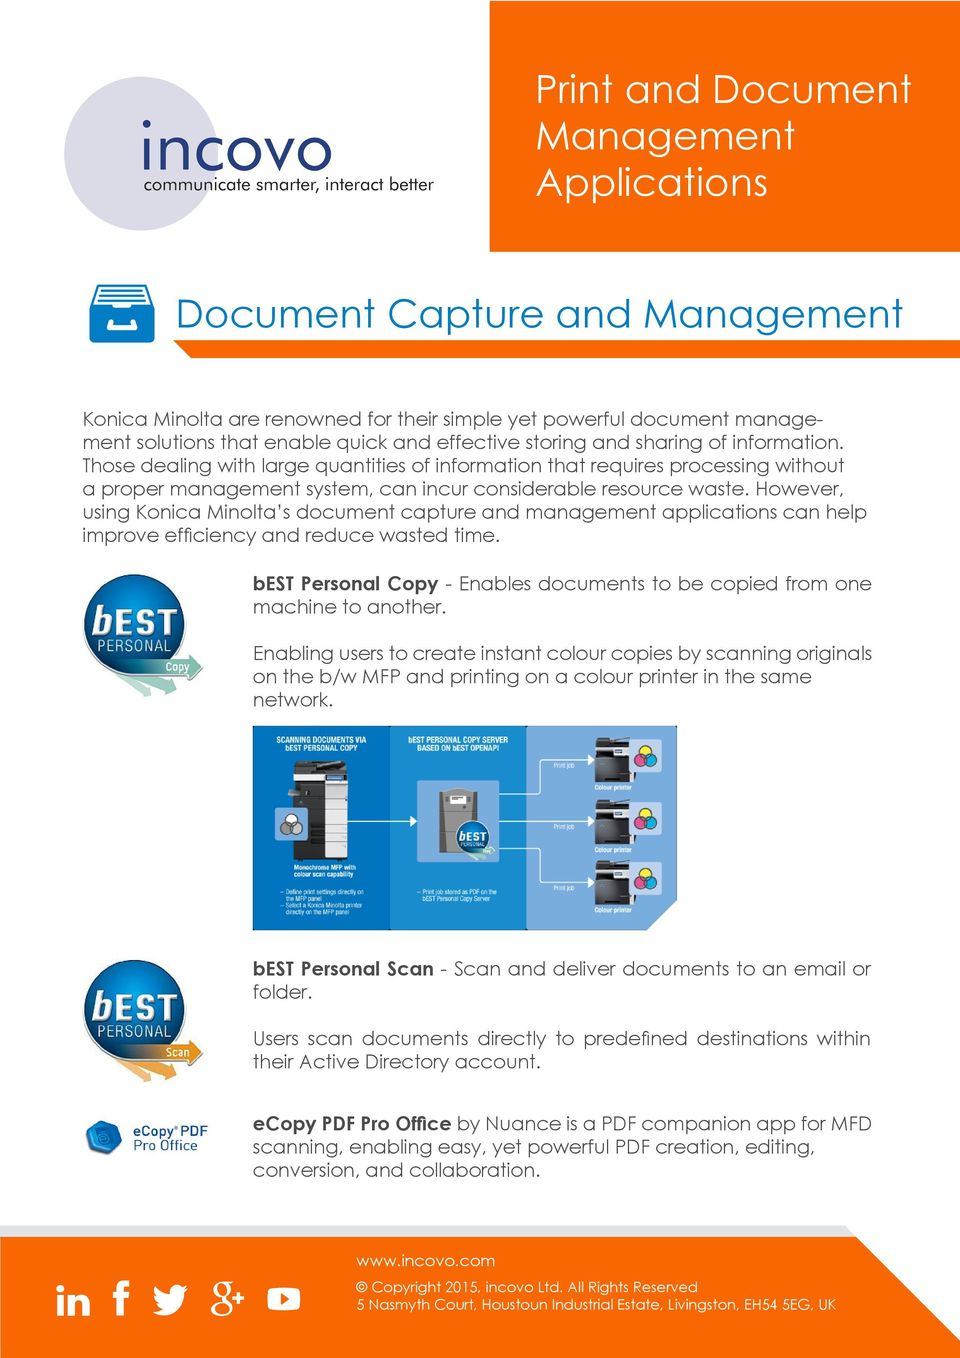 However, using Konica Minolta s document capture and management applications can help improve efficiency and reduce wasted time.